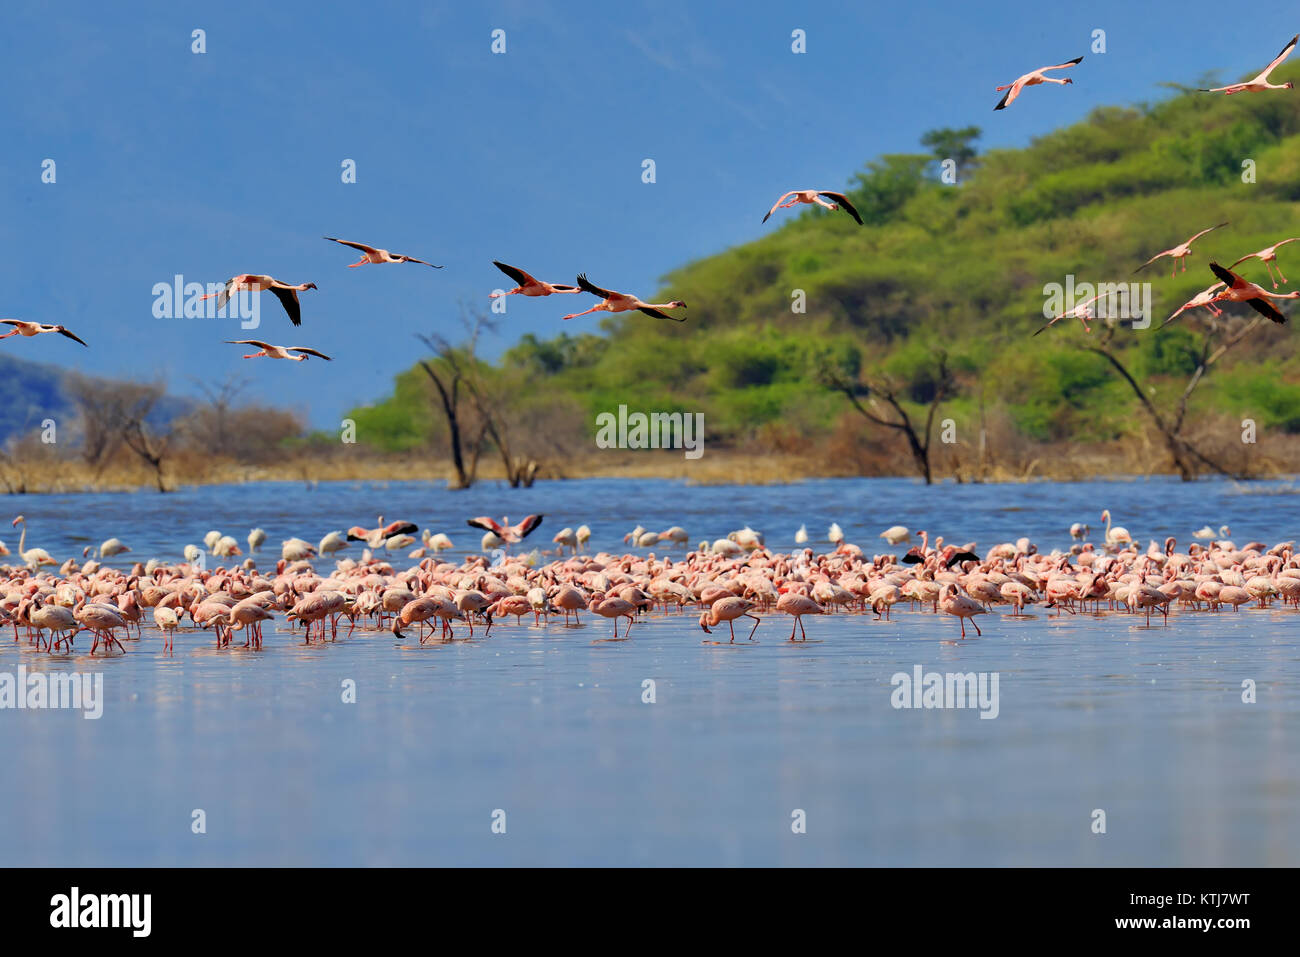 Flock of flamingos wading in the shallow lagoon water. Kenya, Africa - Stock Image